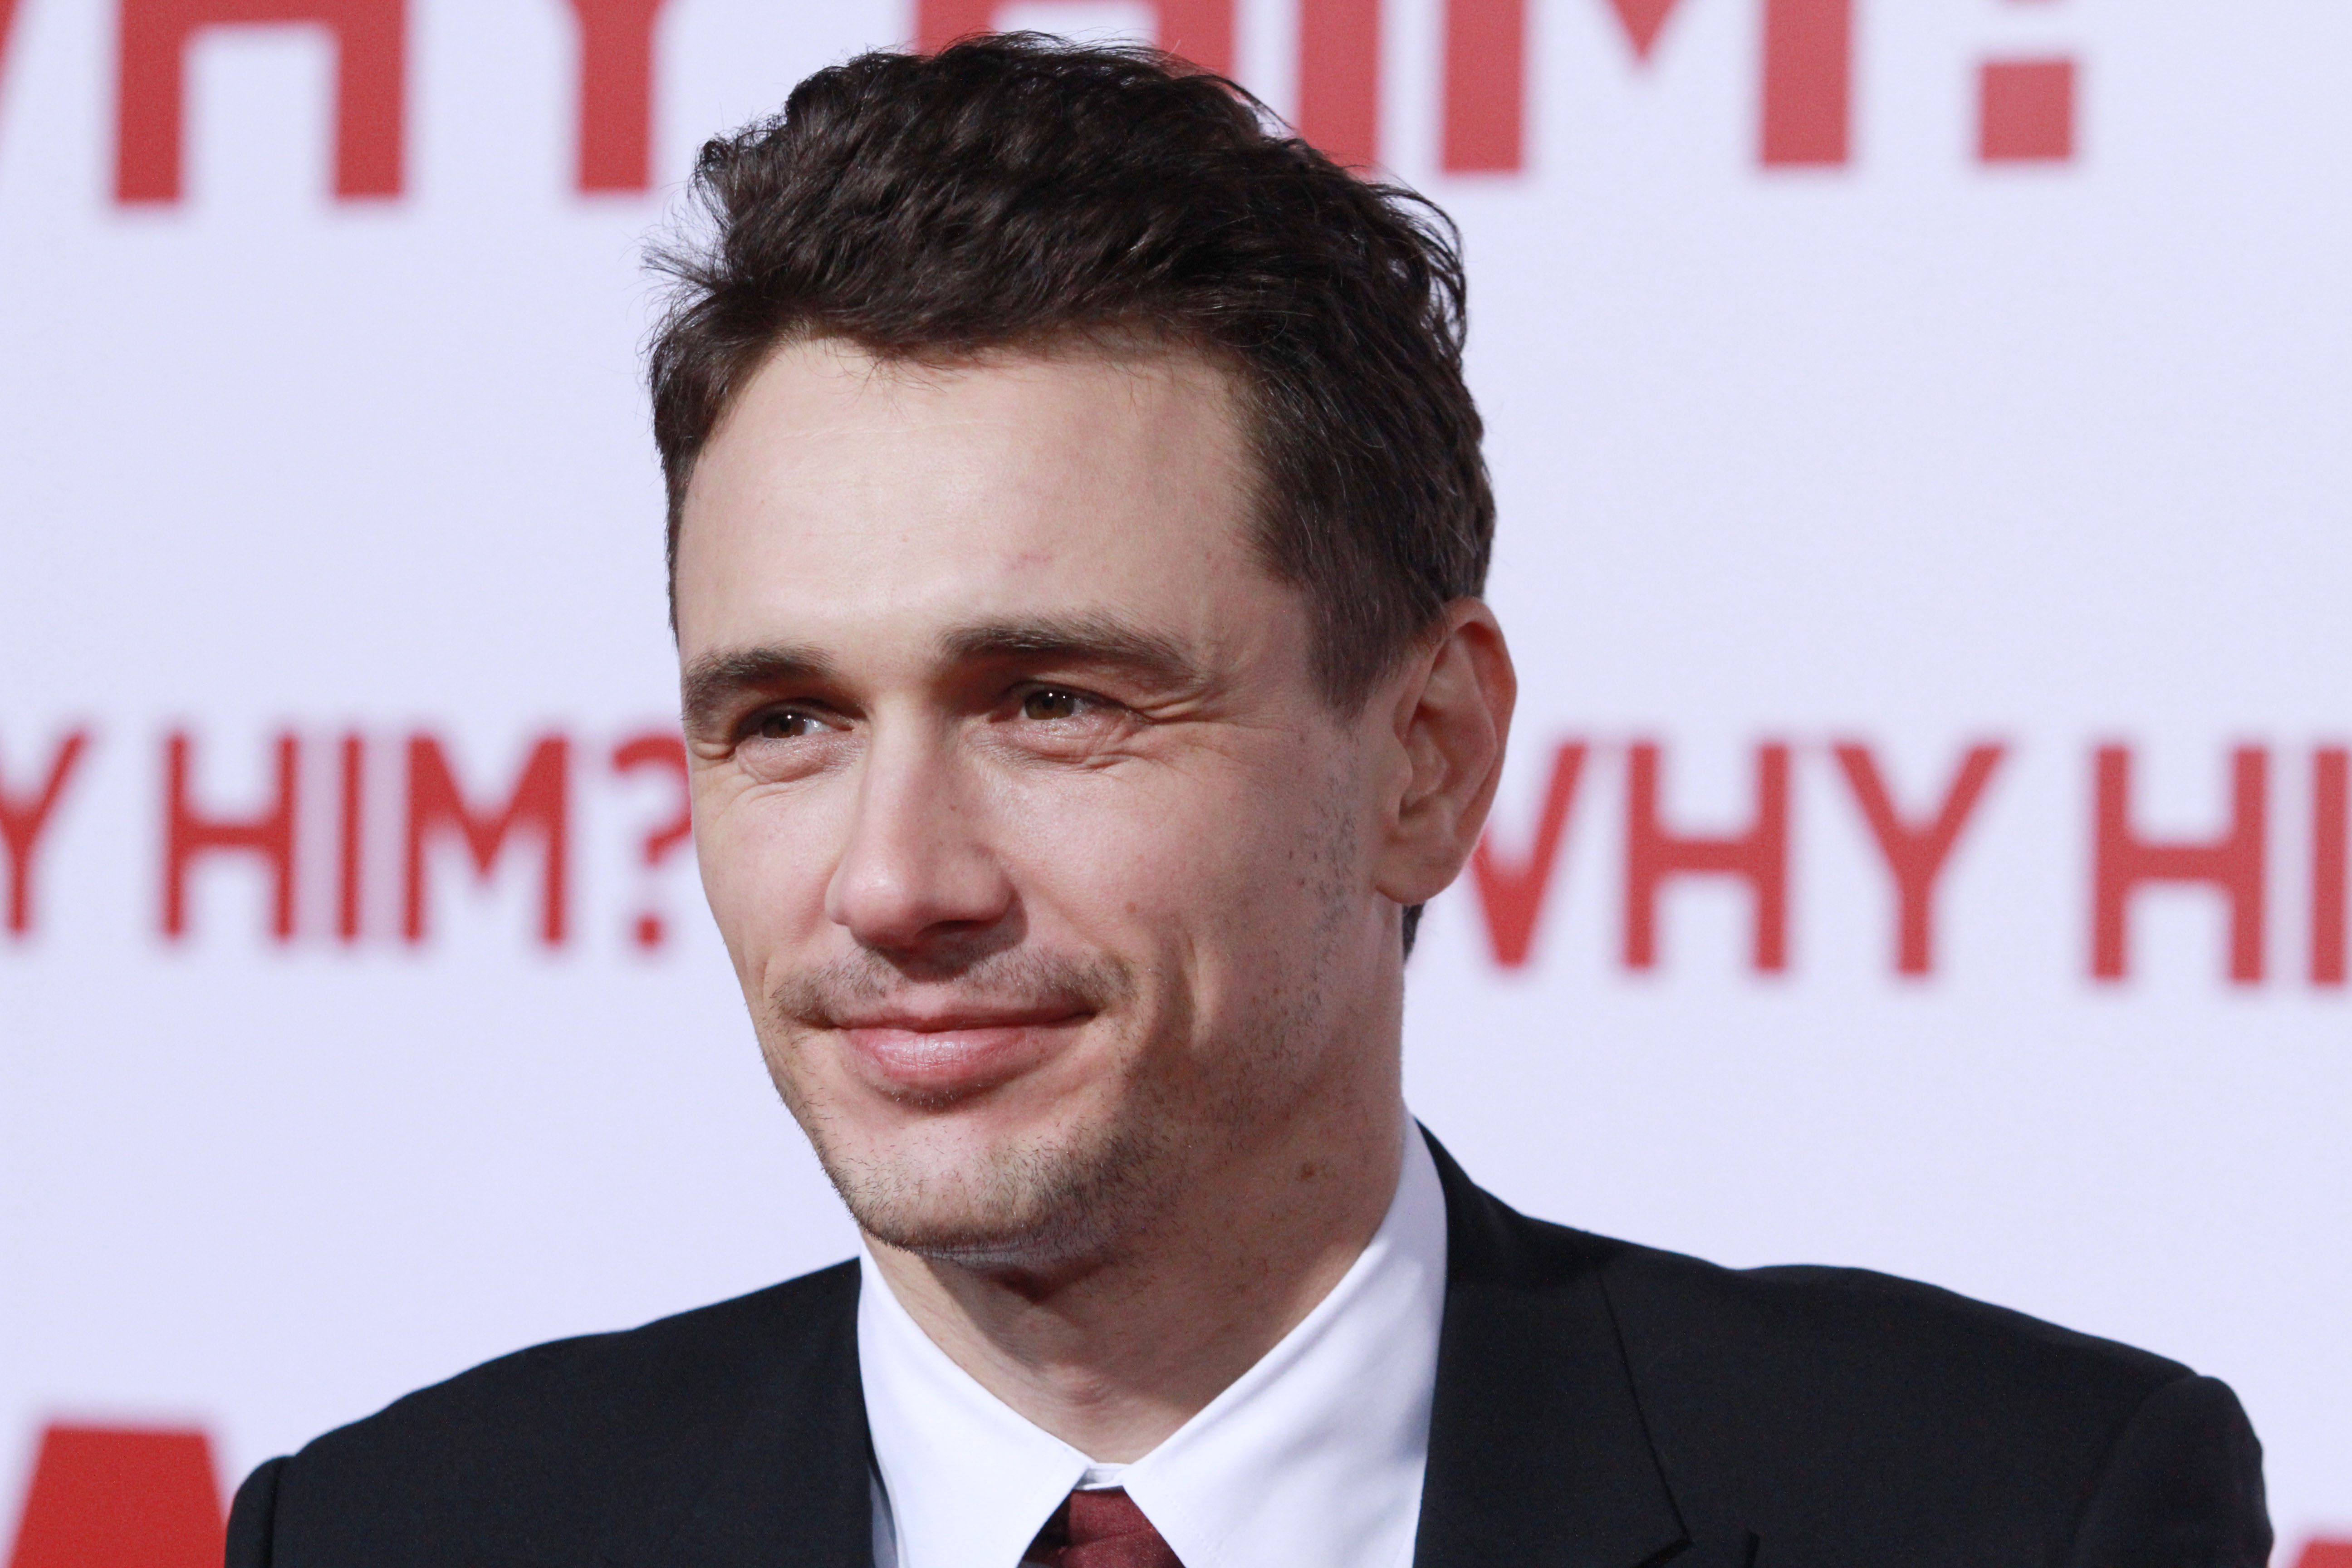 Twitter Calls Out James Franco's Shady Past in Wake of Time's Up